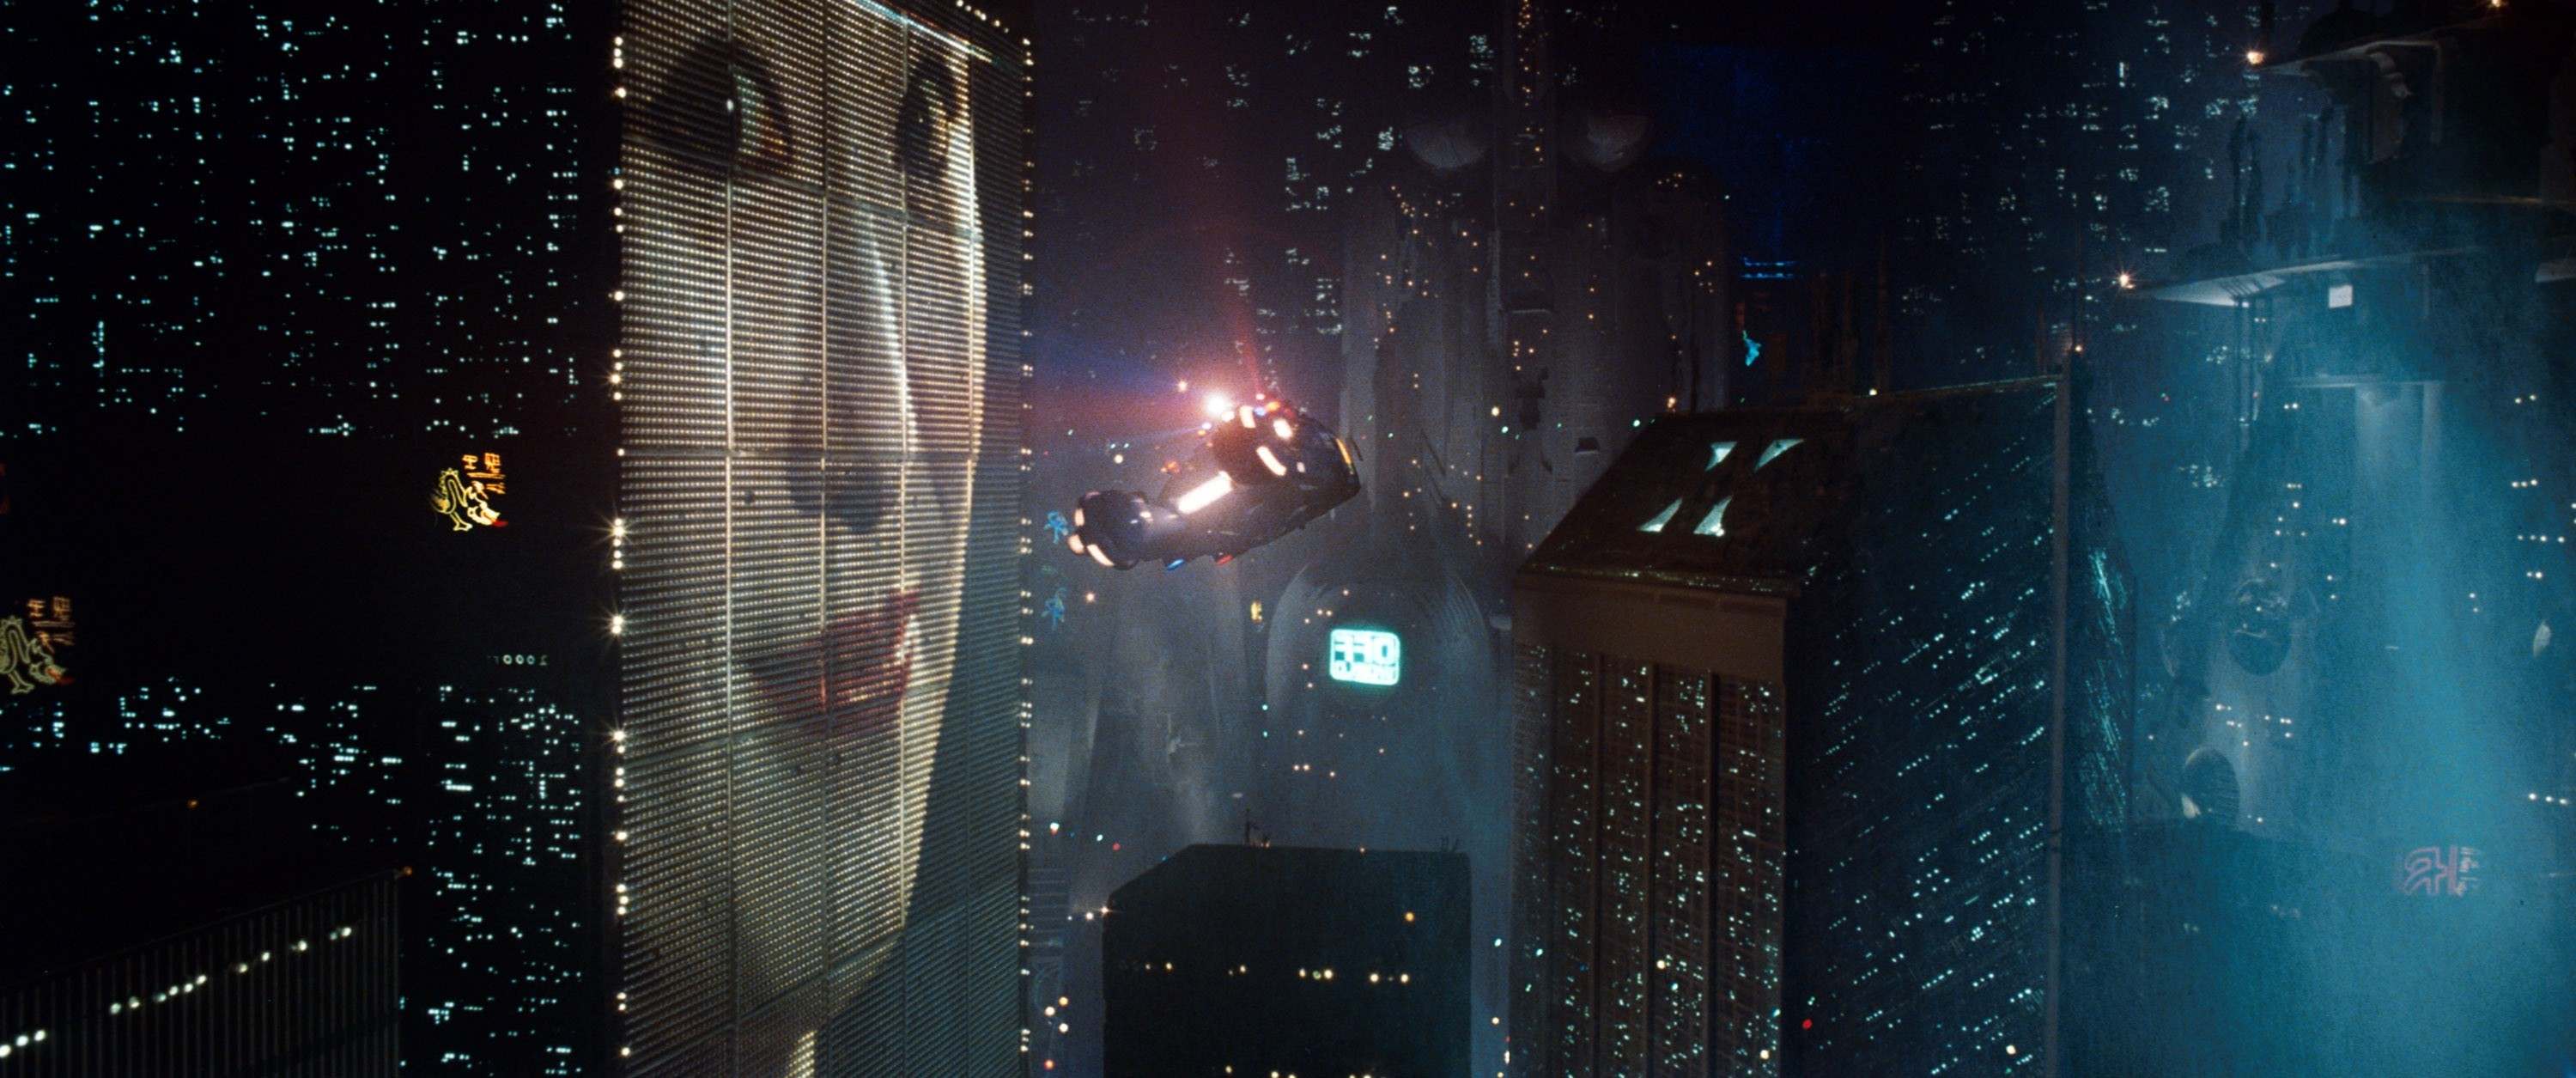 3000x1255 city, Blade Runner, Movies Wallpapers HD / Desktop and Mobile Backgrounds